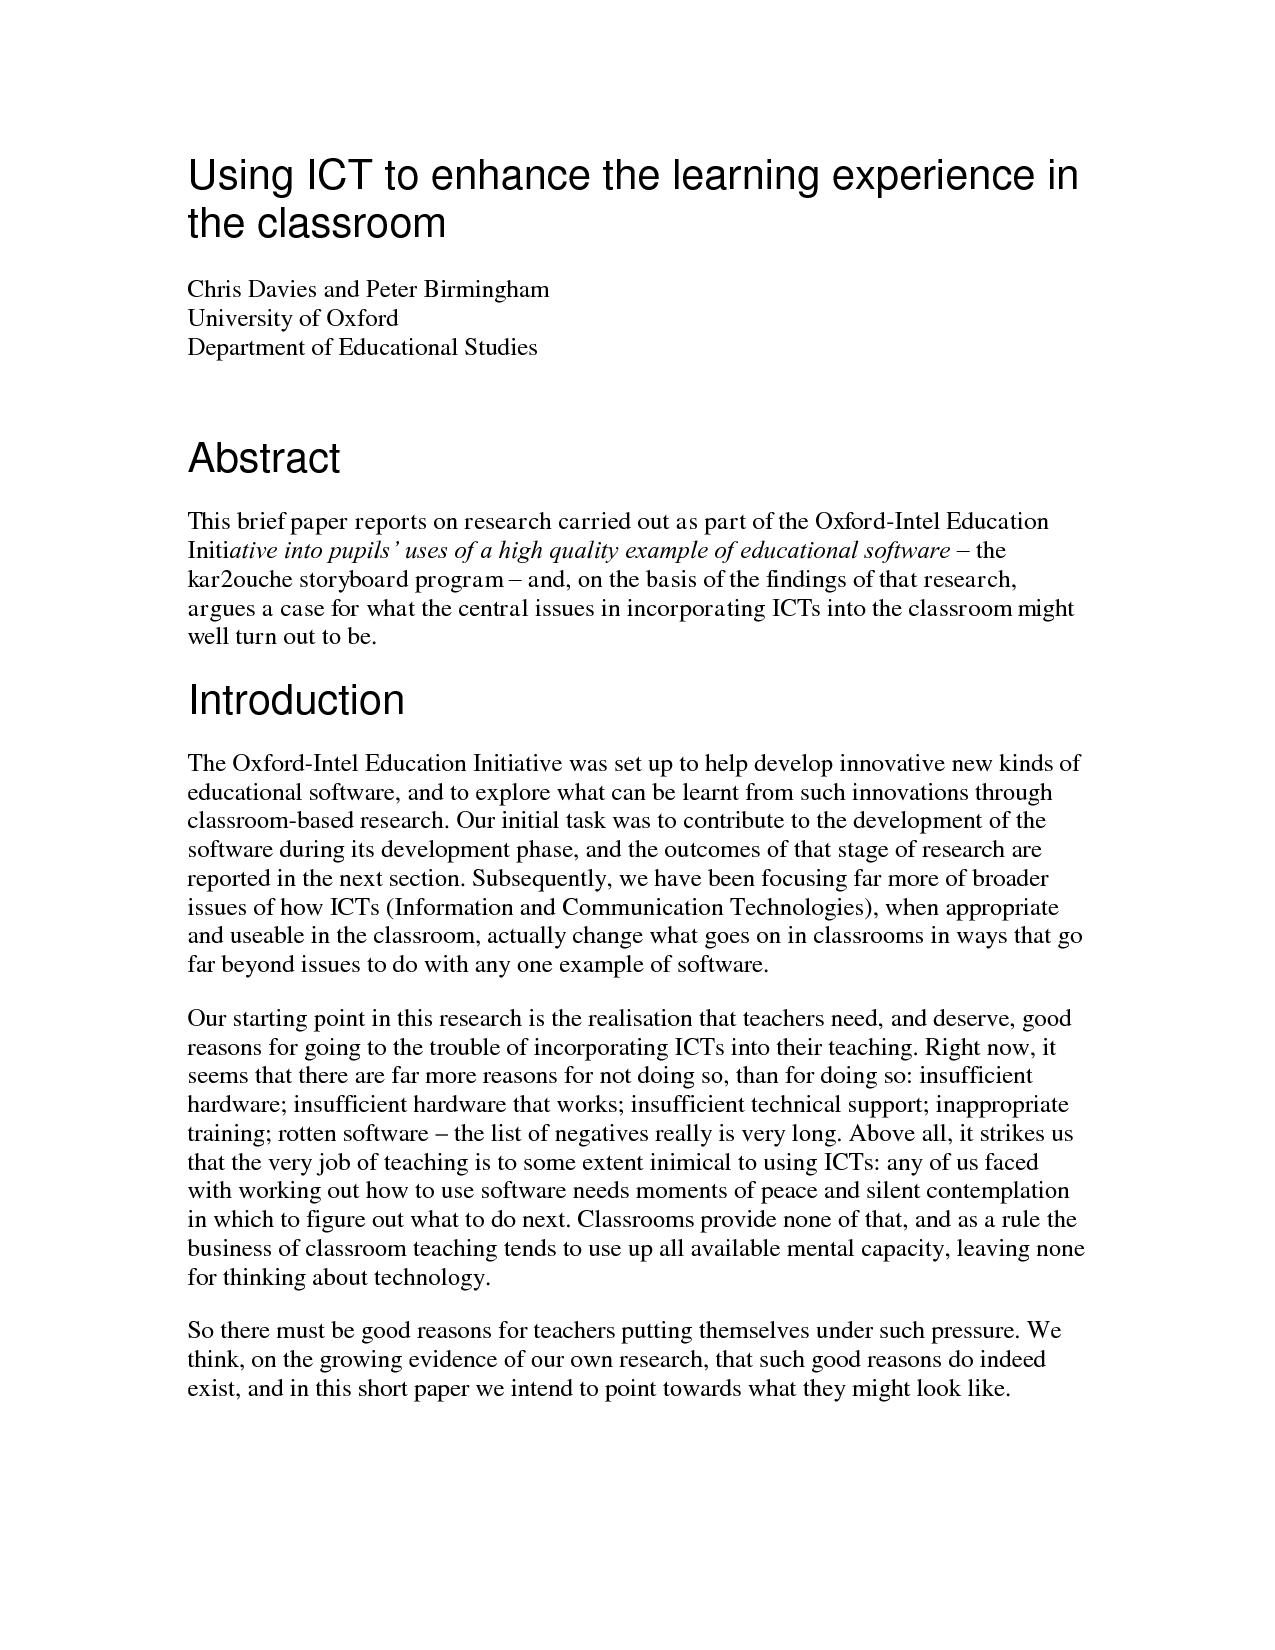 002 Essay Abstract Example Awful Paper Apa Without Research Pdf Full